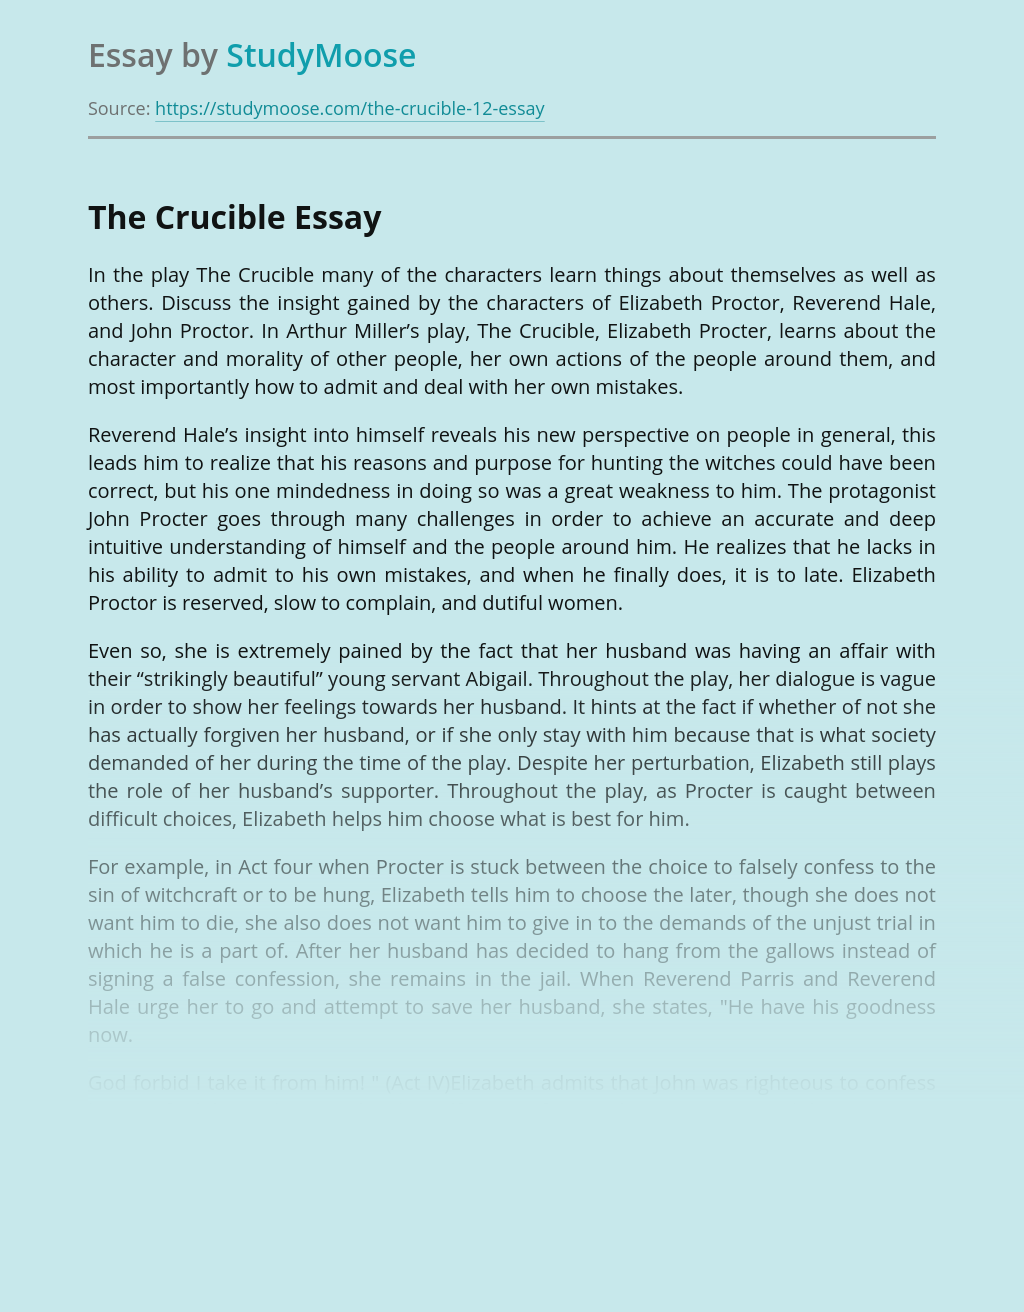 The Crucible: Things Characters Learn